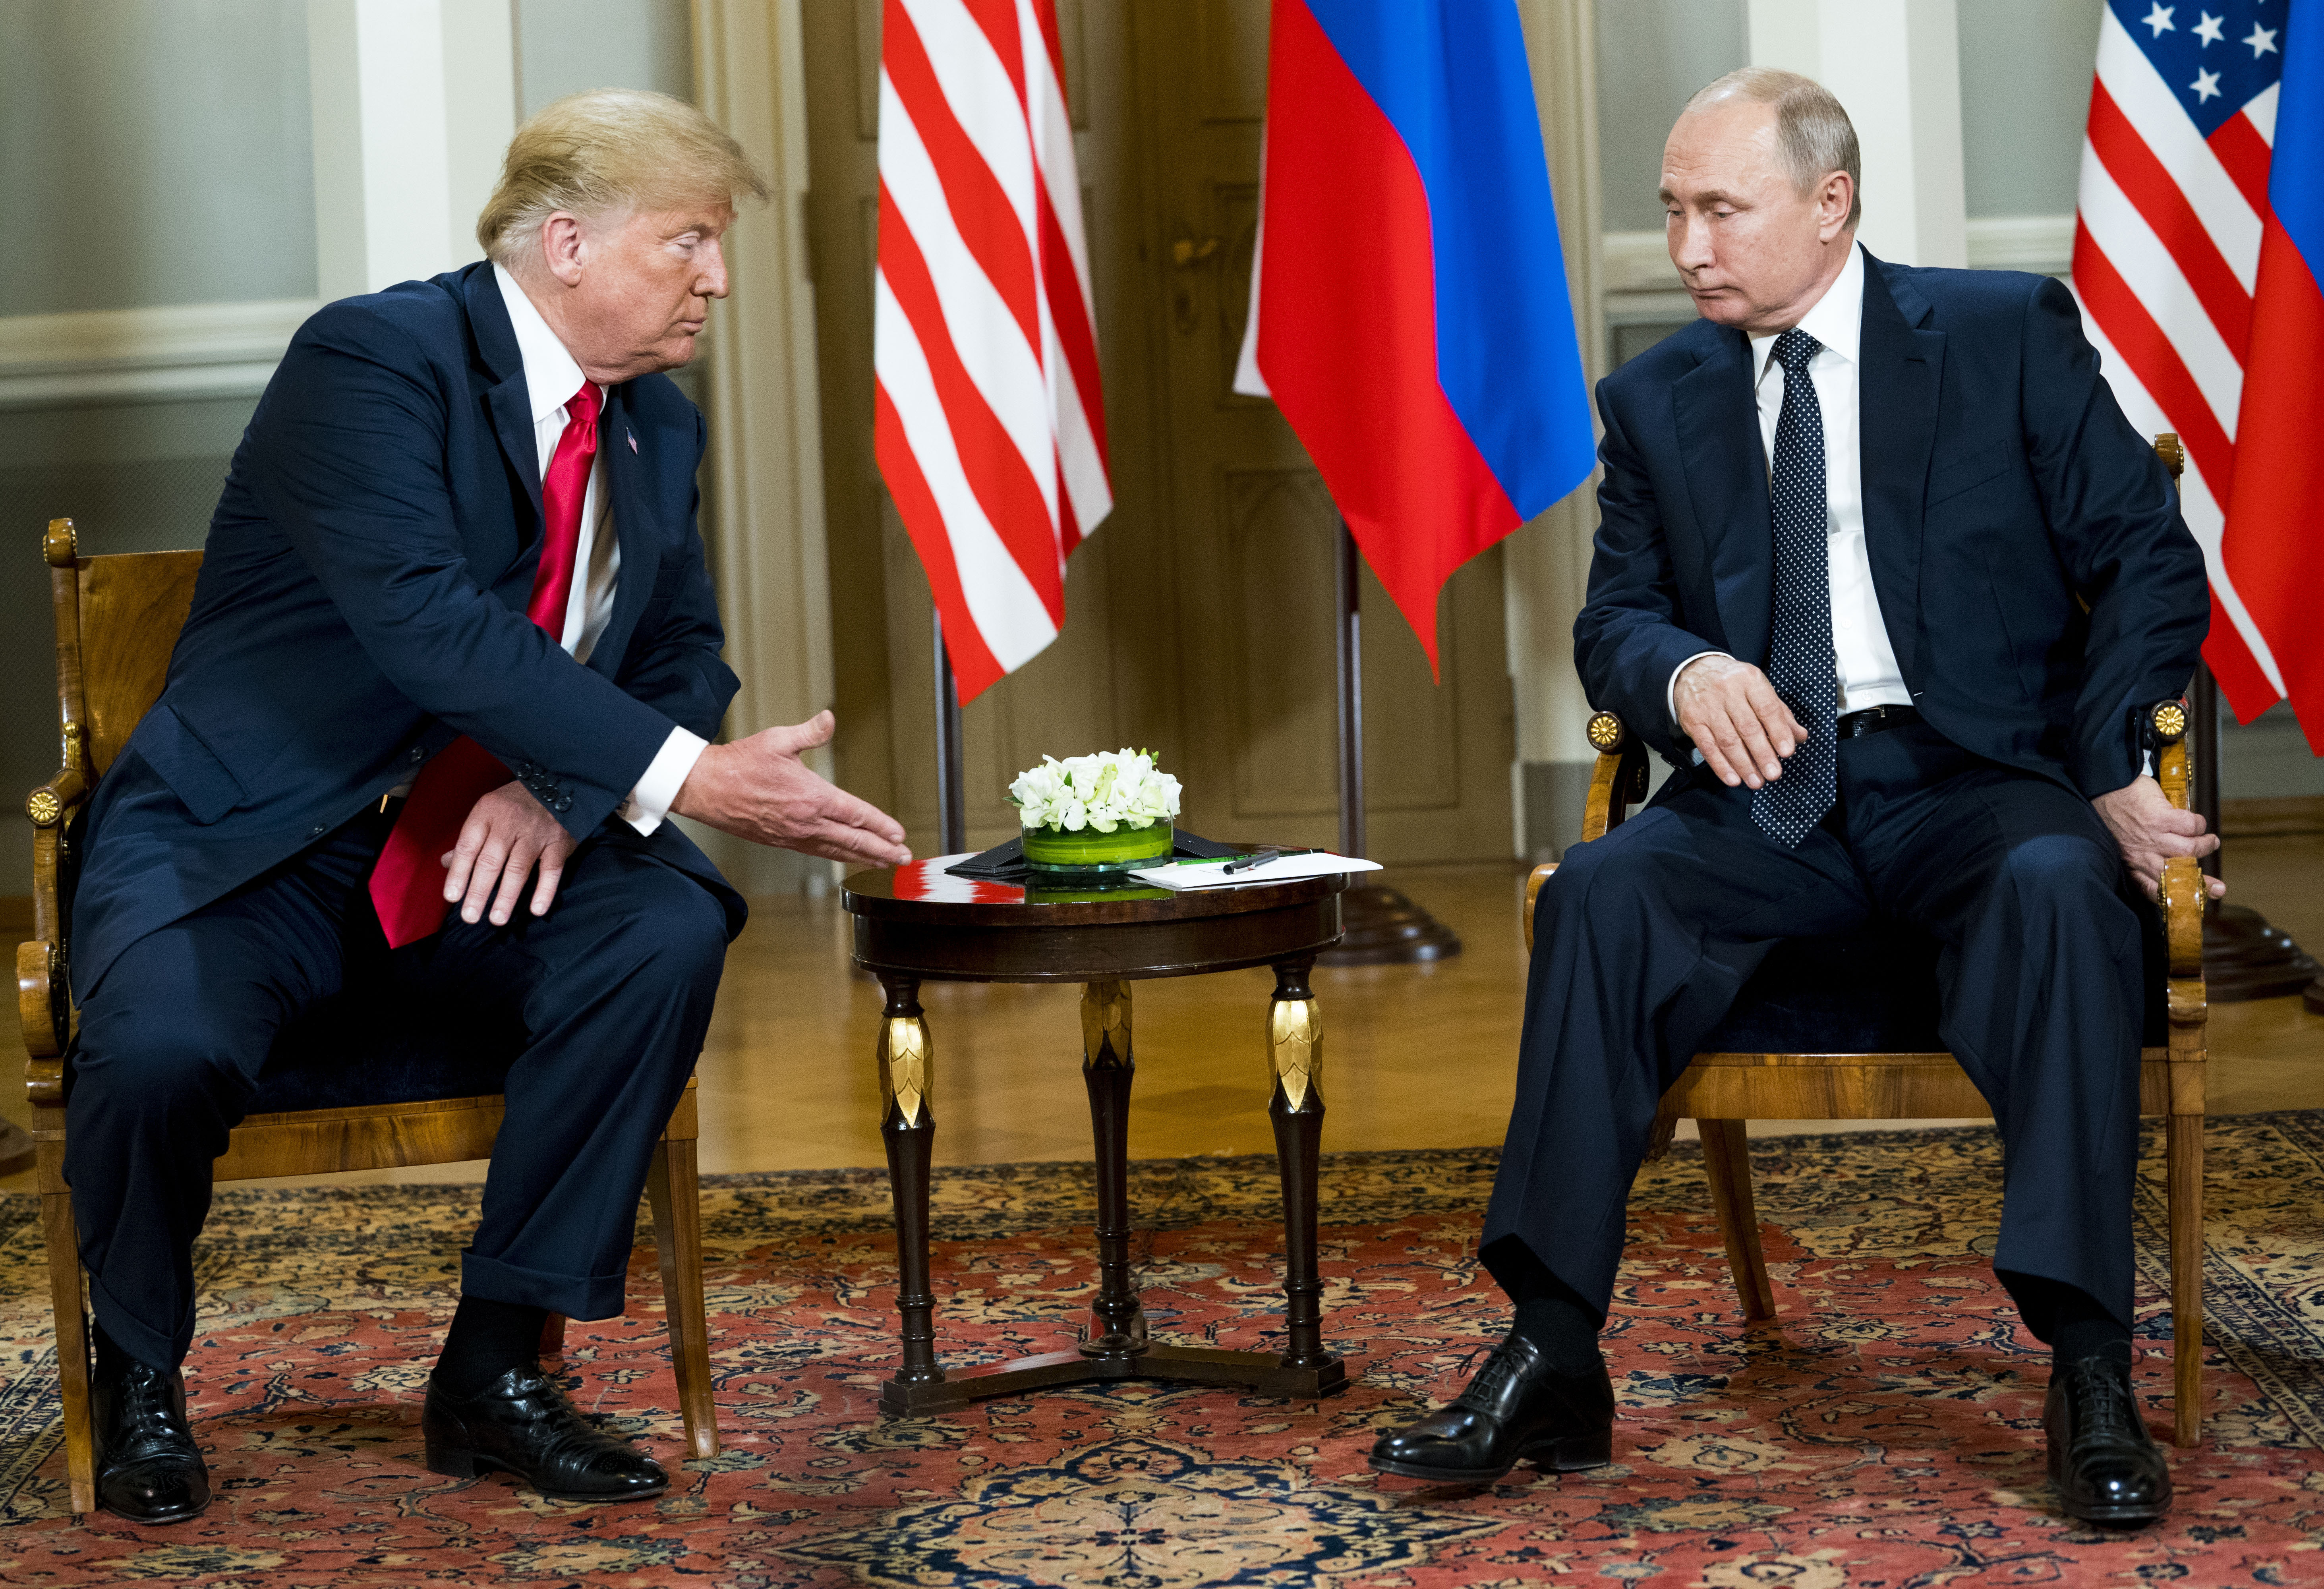 Trump and Putin Shake Hands in Helsinki, Then Meet Behind Closed